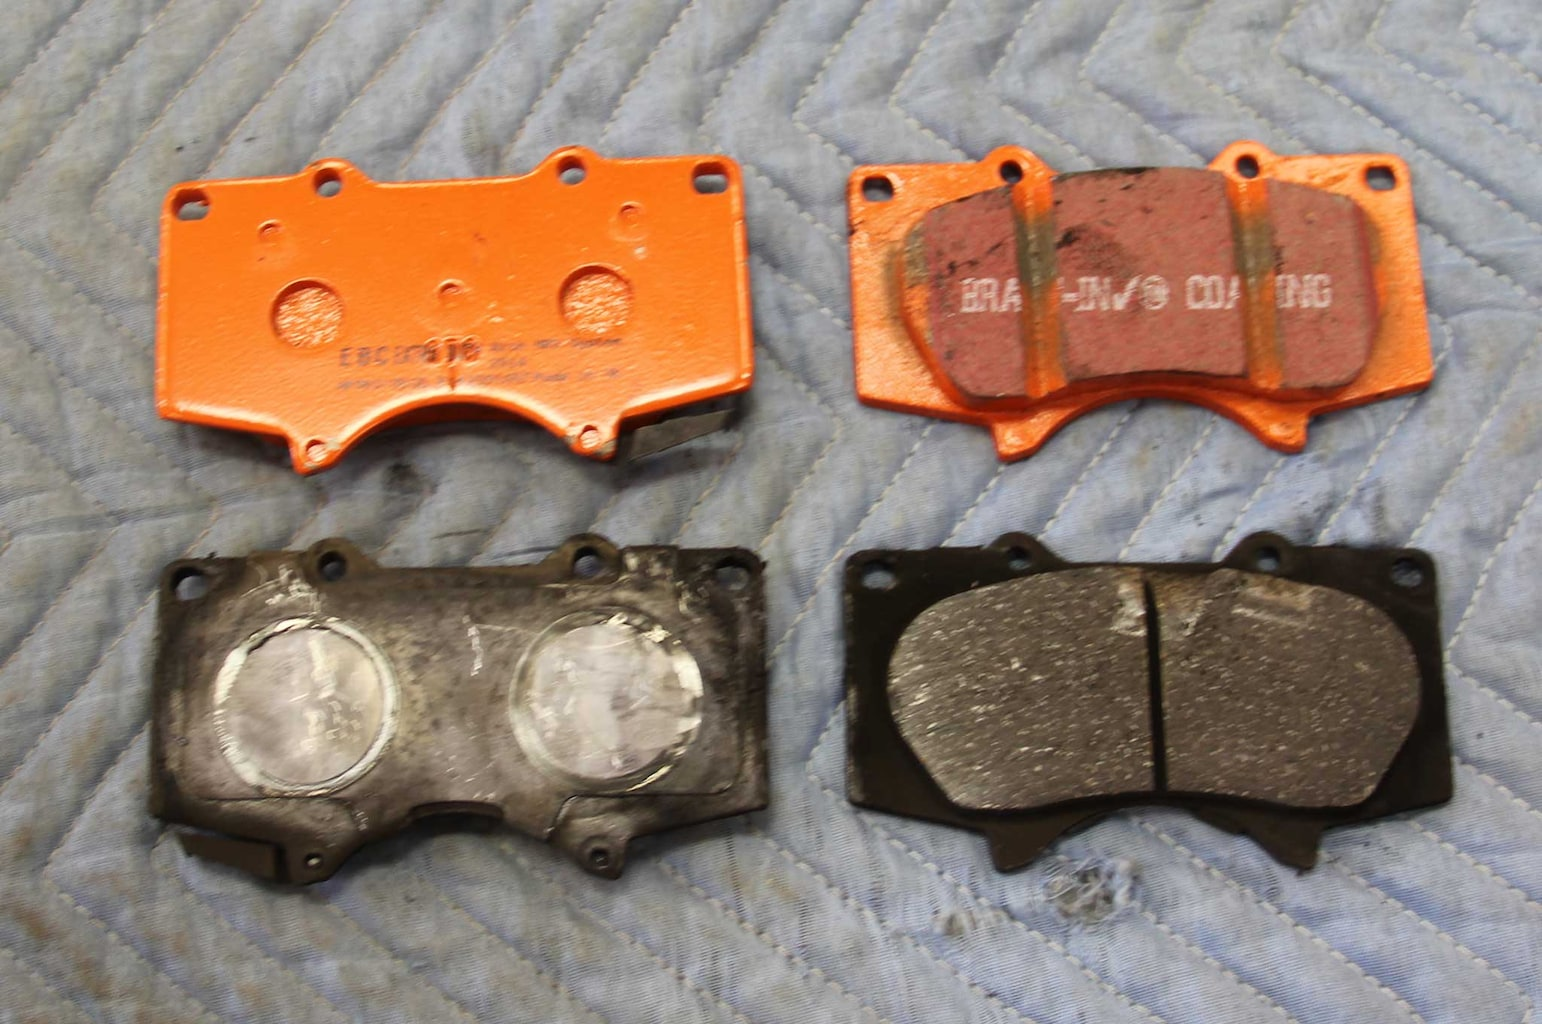 ebc brakes gd rotor and truck pad install pad comparison 008